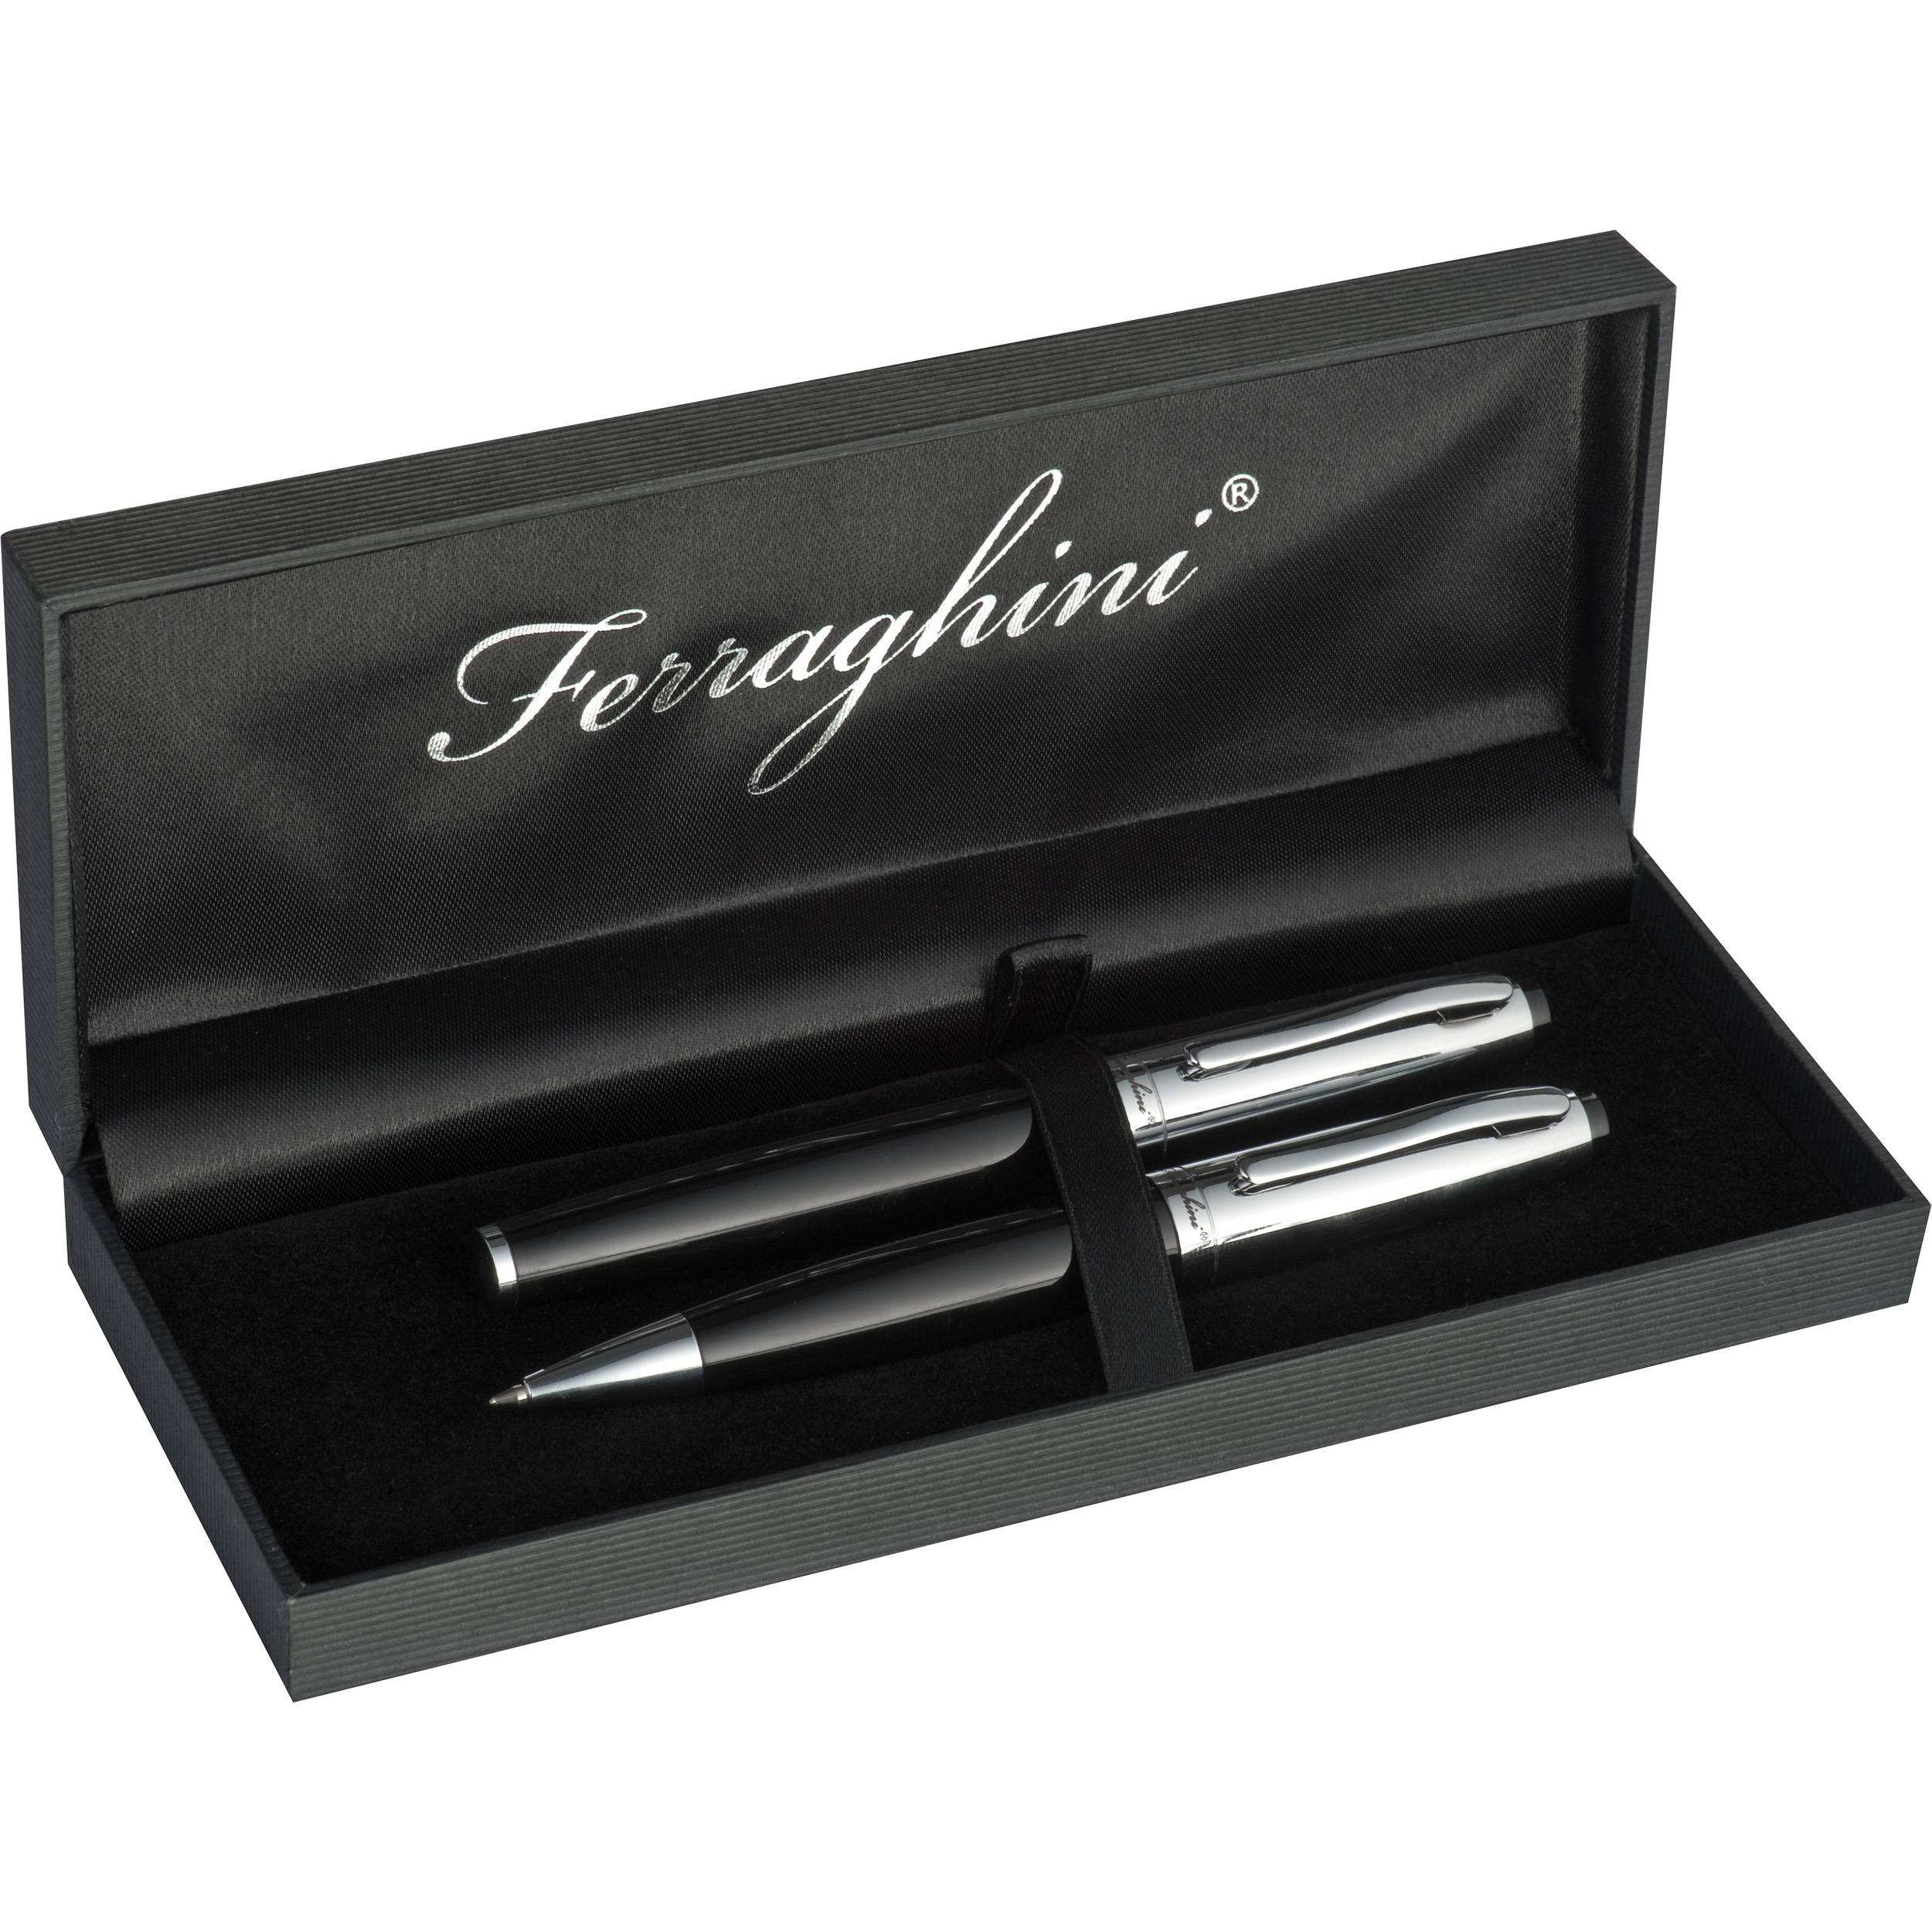 Ferraghini writing set with a ball pen and a rollerball pen